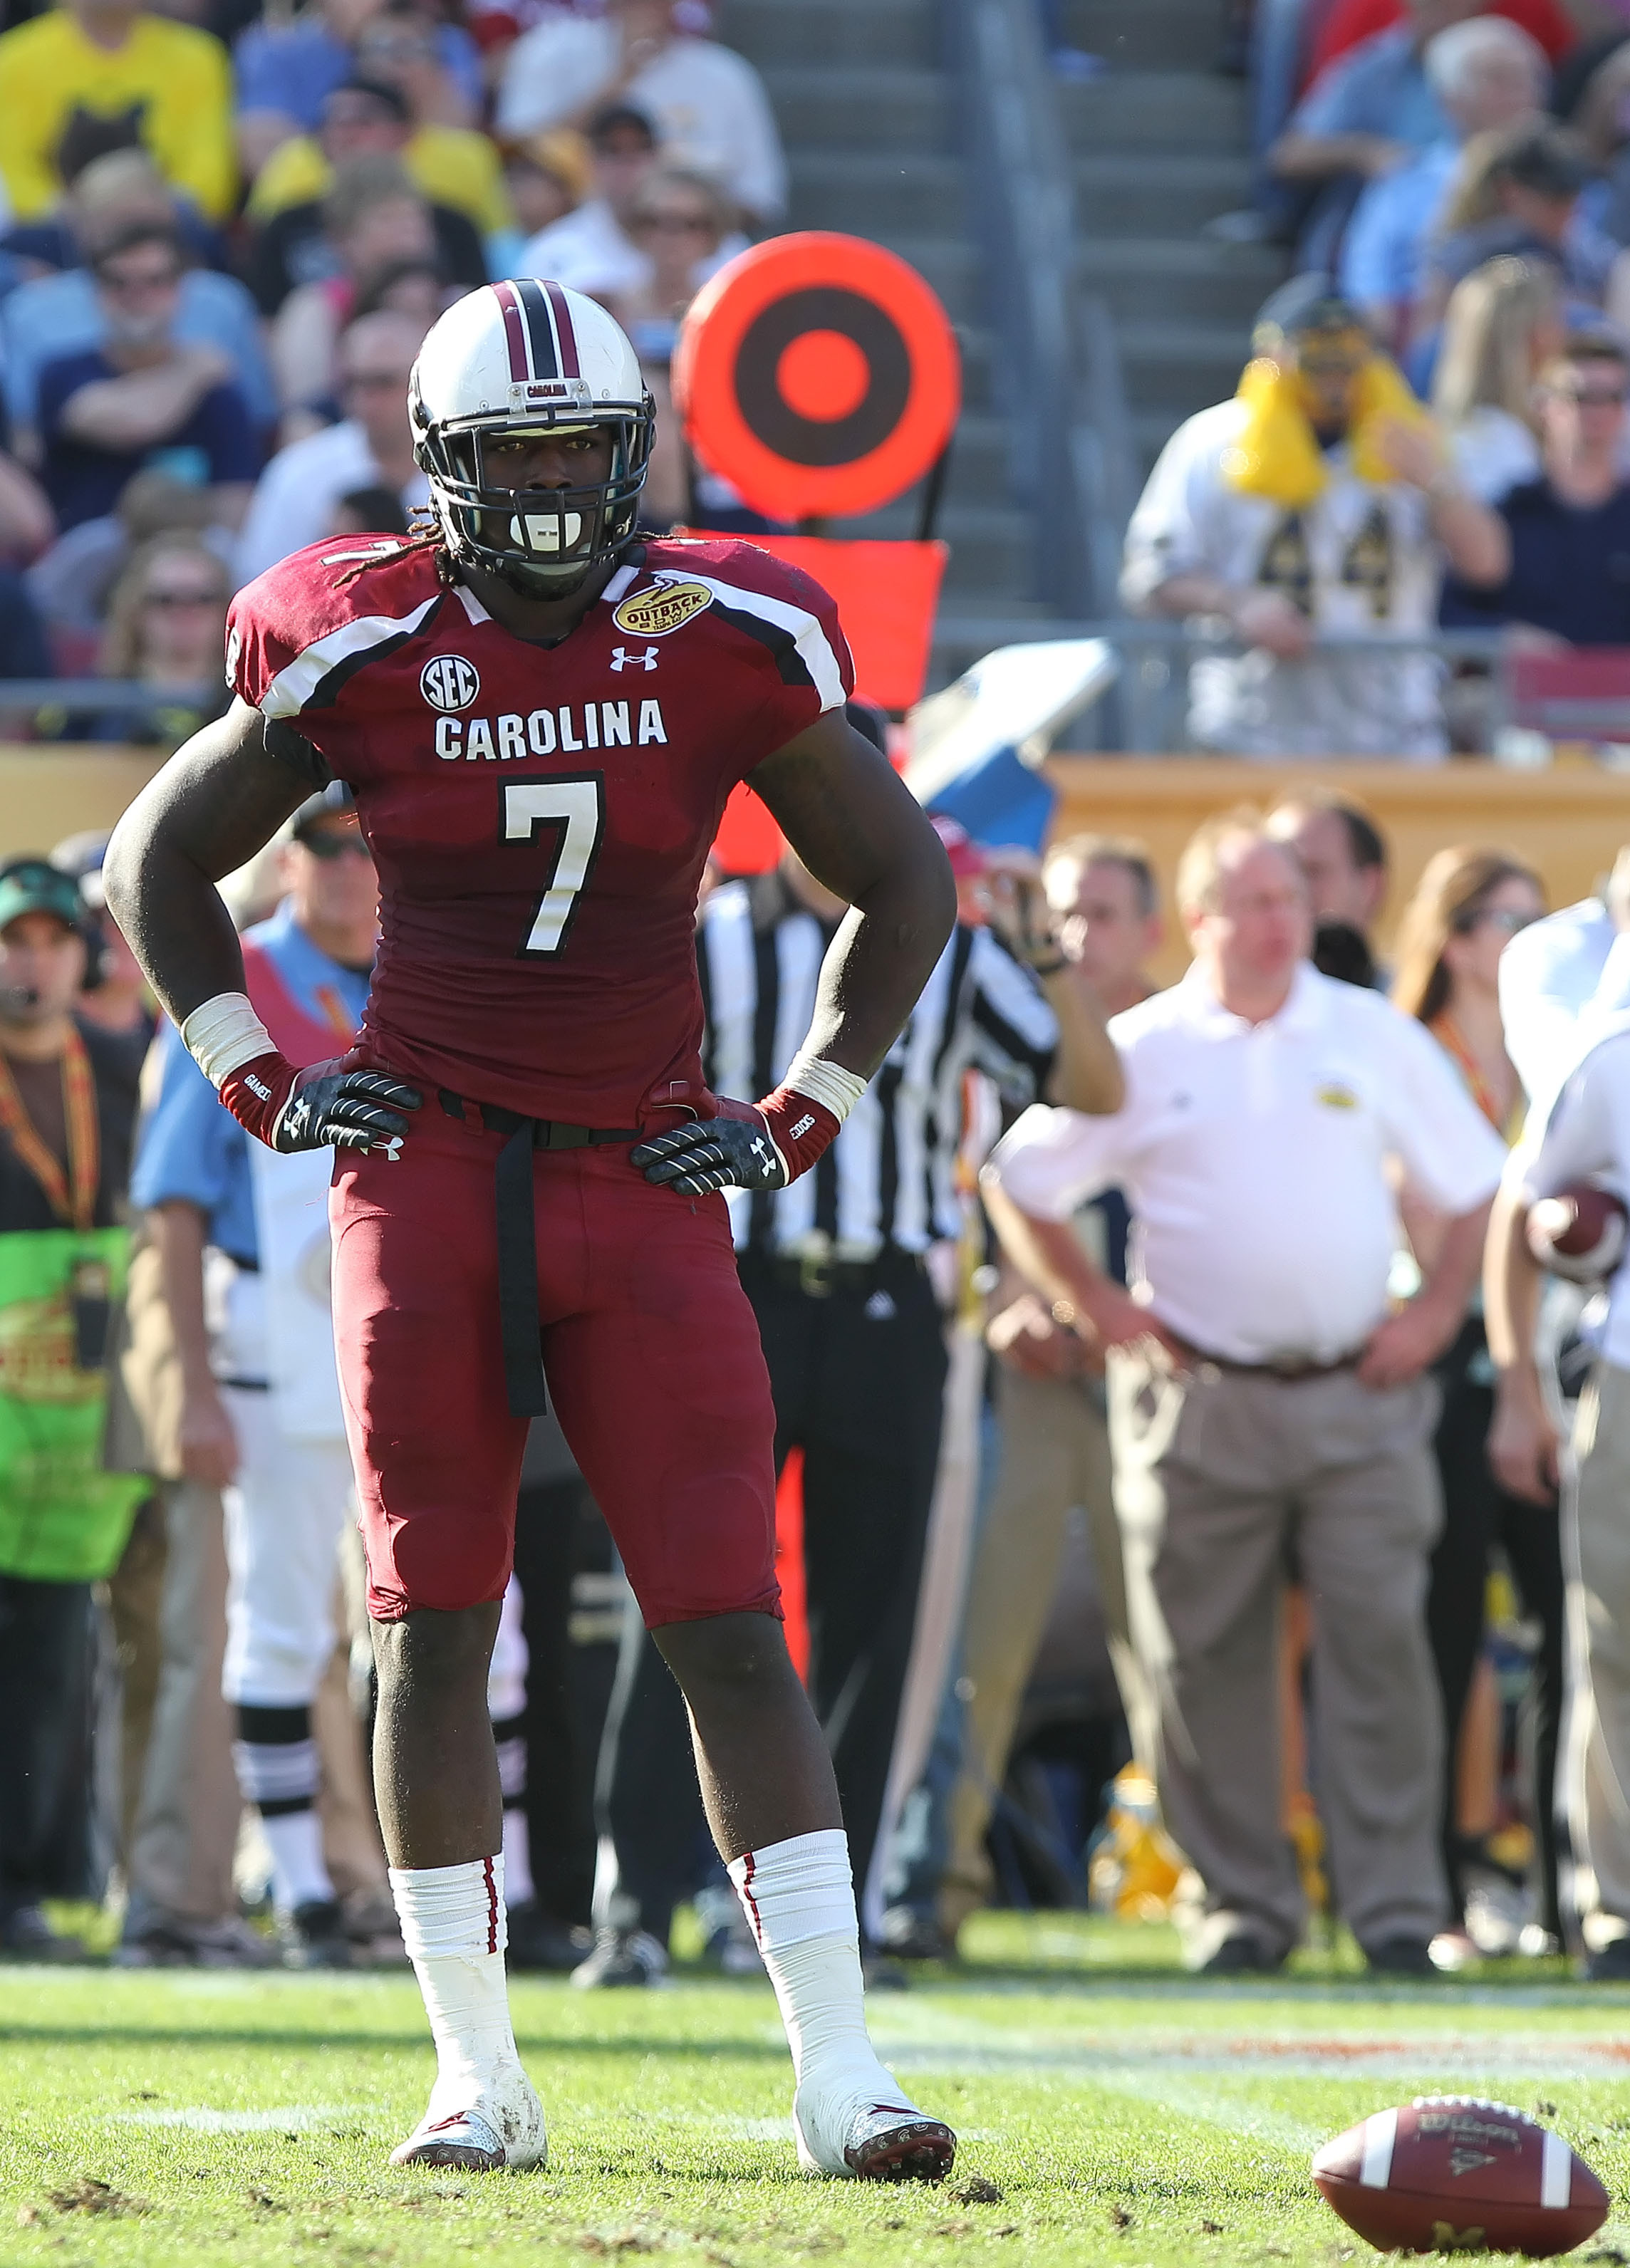 Jadeveon Clowney and other college players now risk ejection for helmet-to-helmet hits. (USA Today Sports)